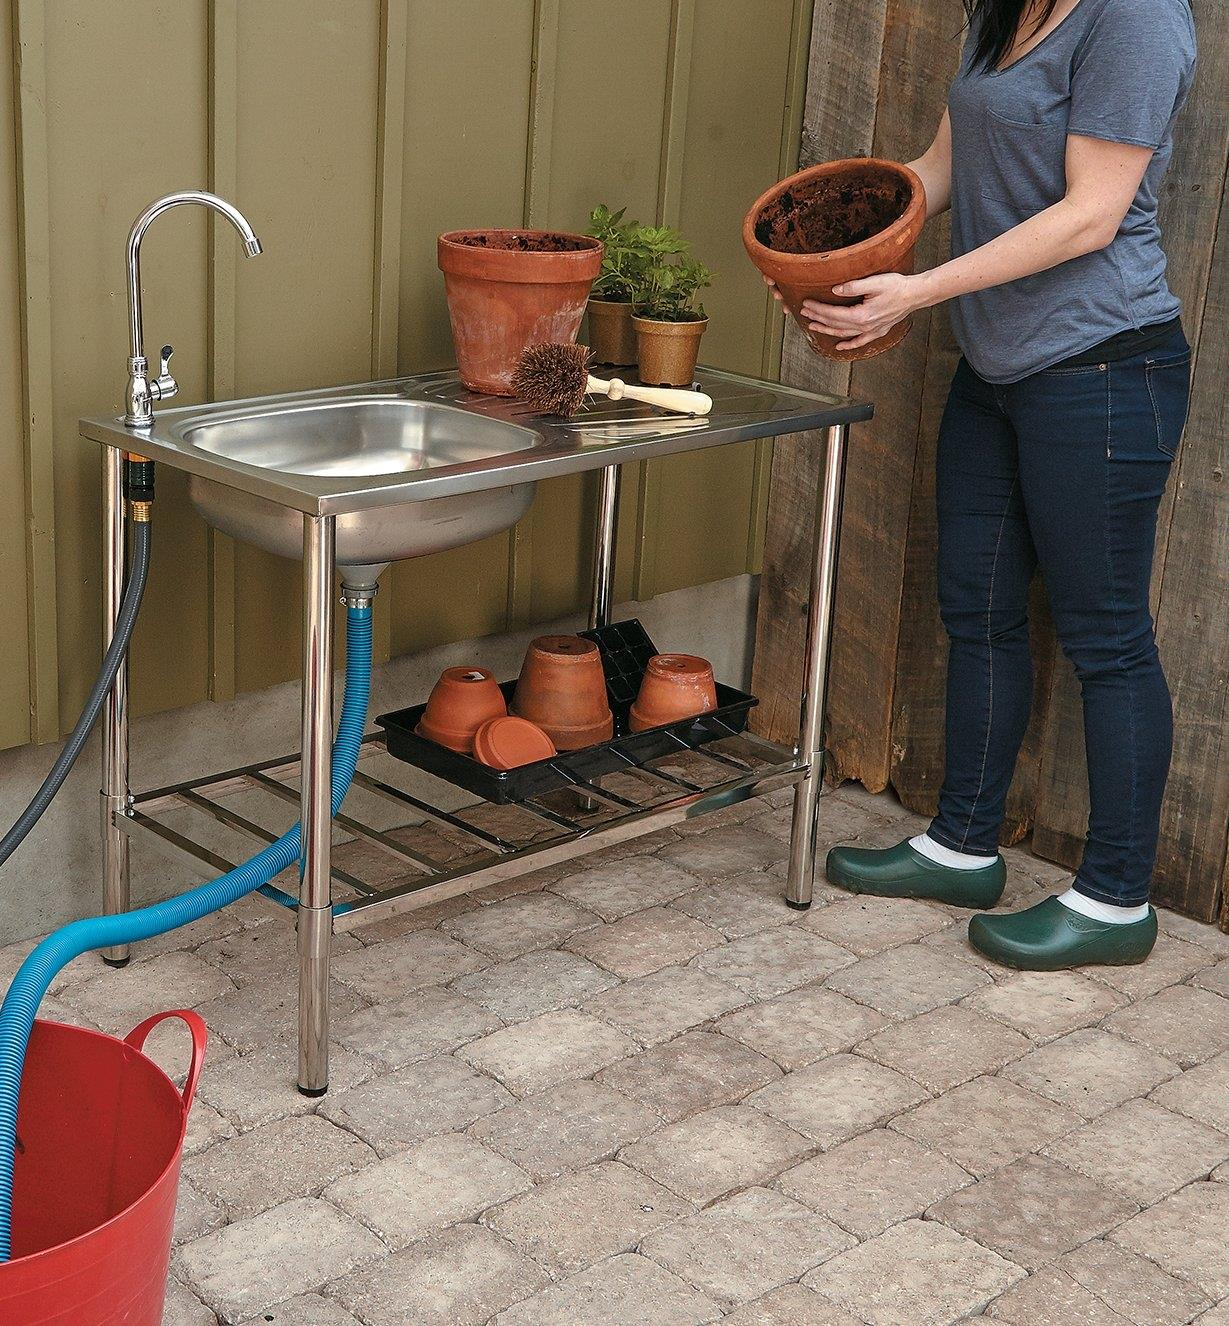 Stainless-Steel Outdoor Wash Table holding various sizes of pots on the top and lower shelf